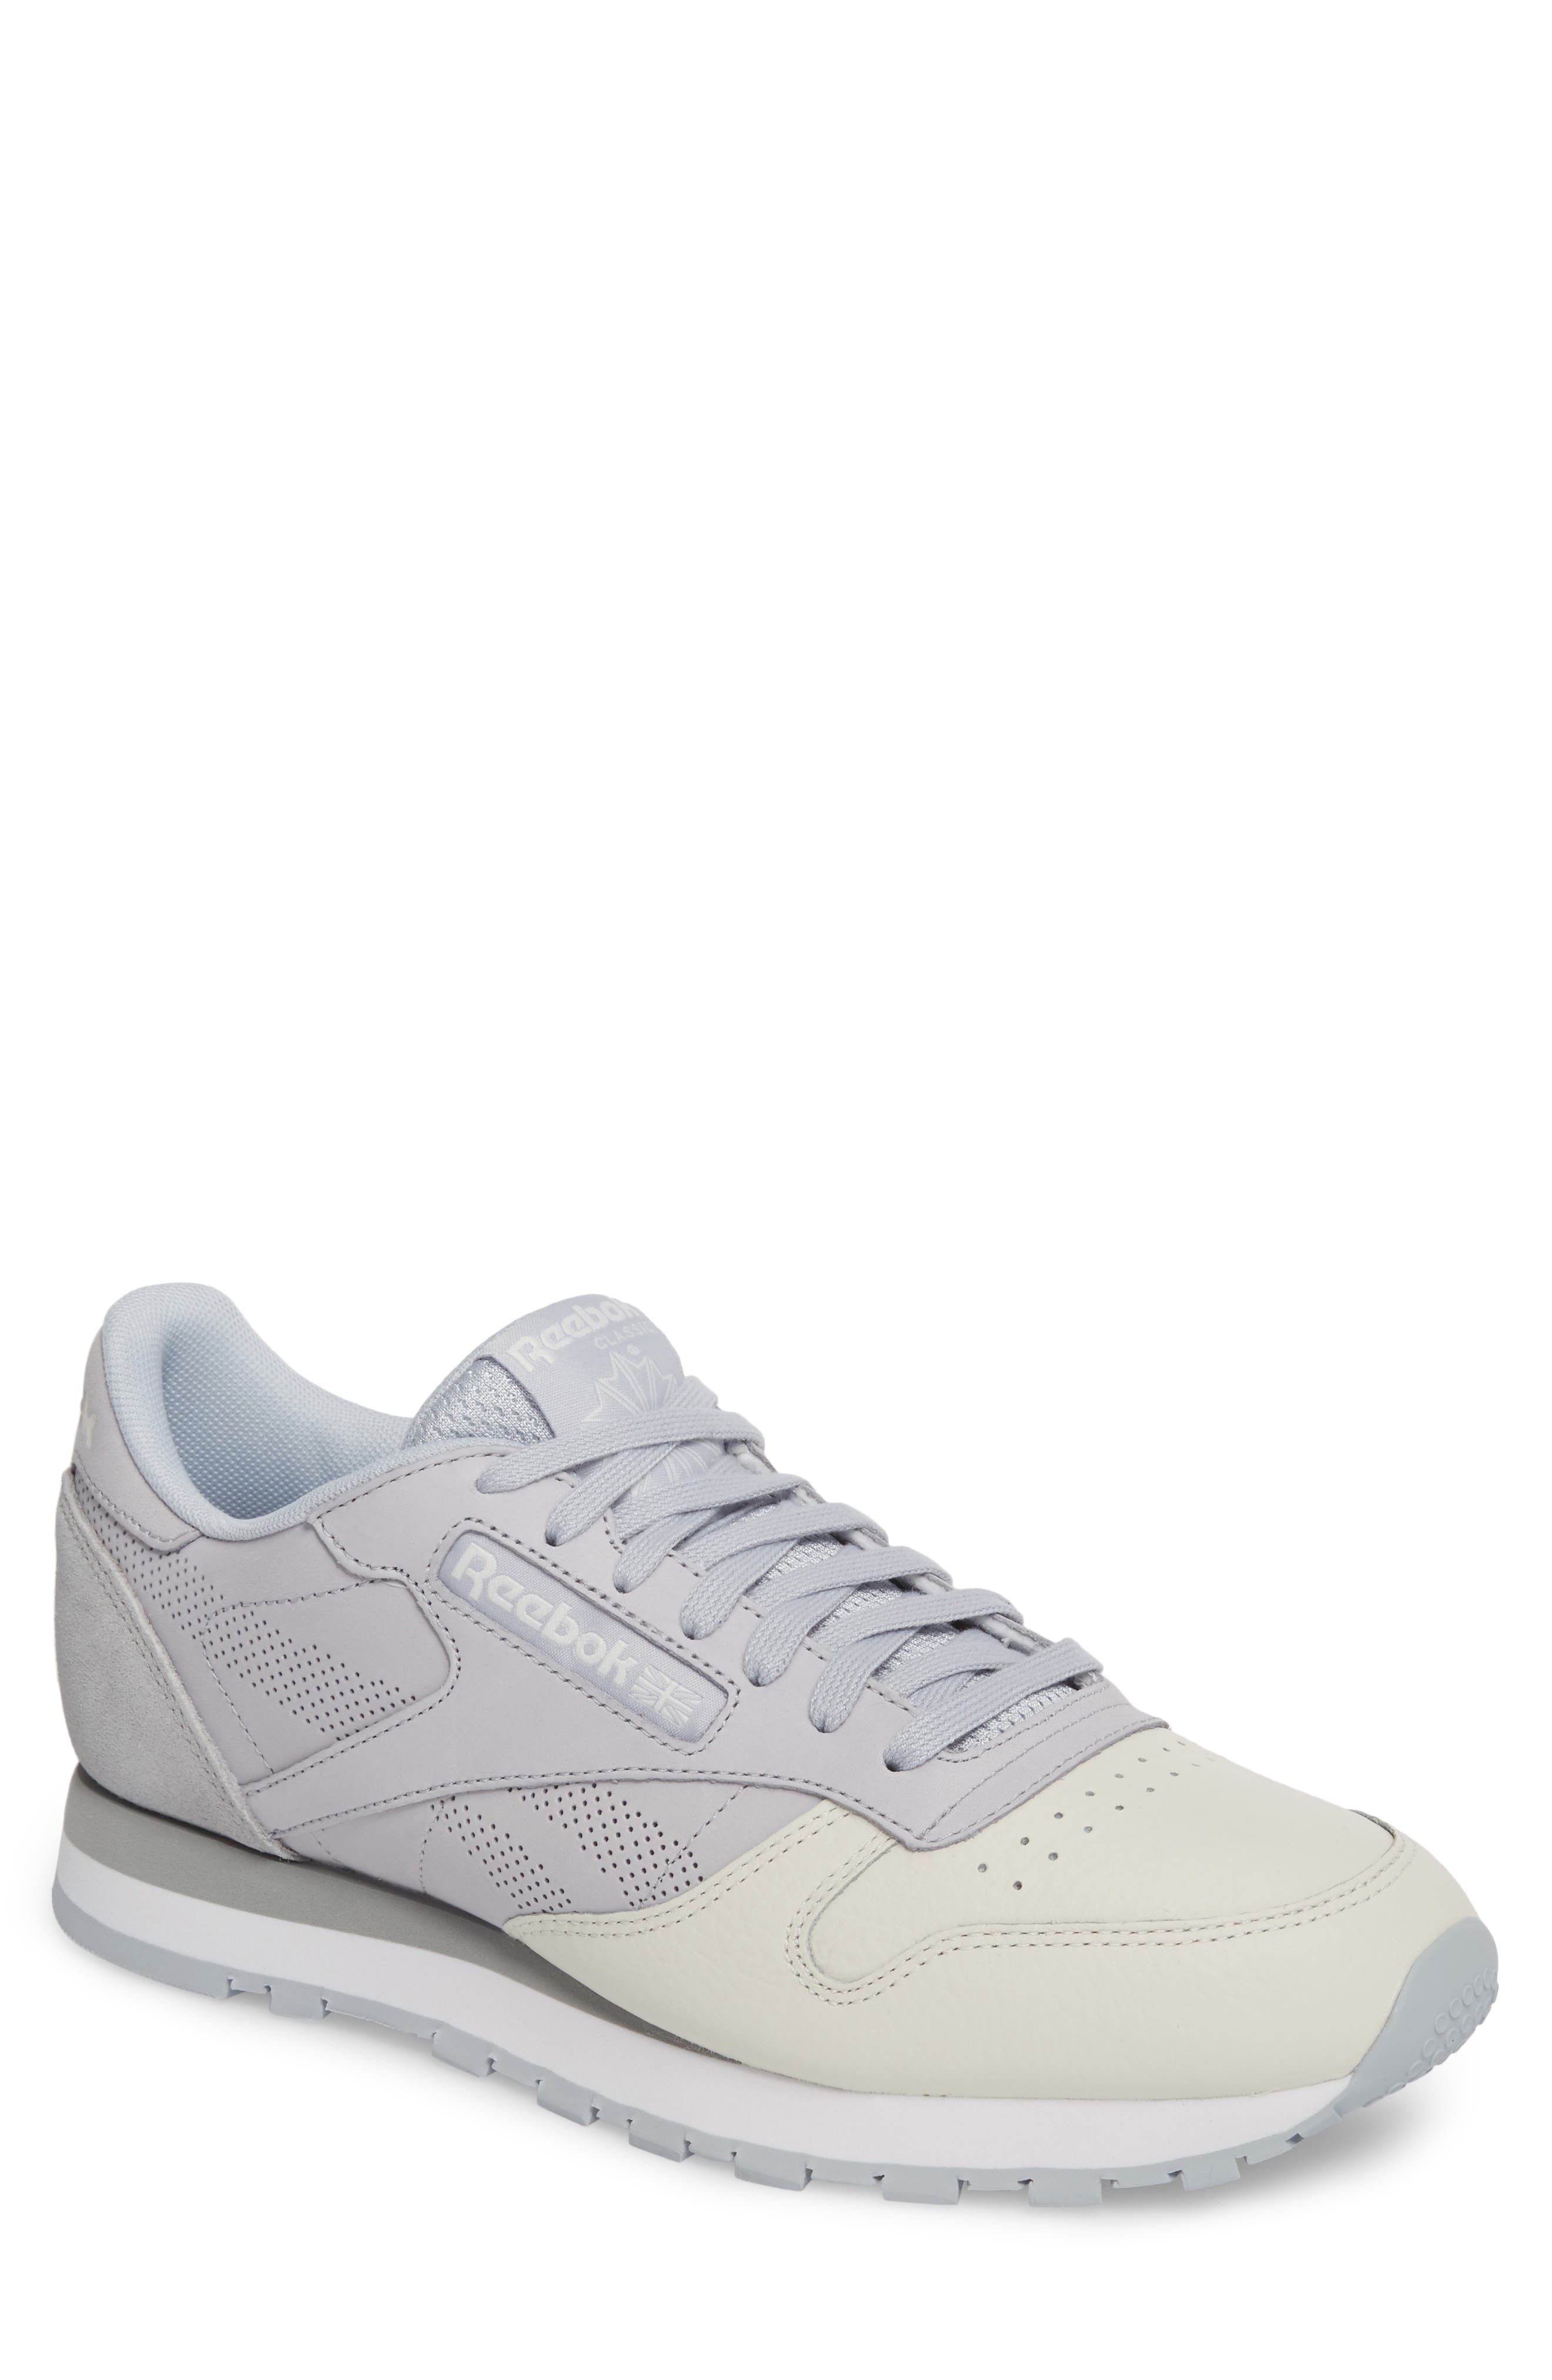 Classic Leather UE Sneaker,                         Main,                         color, 020